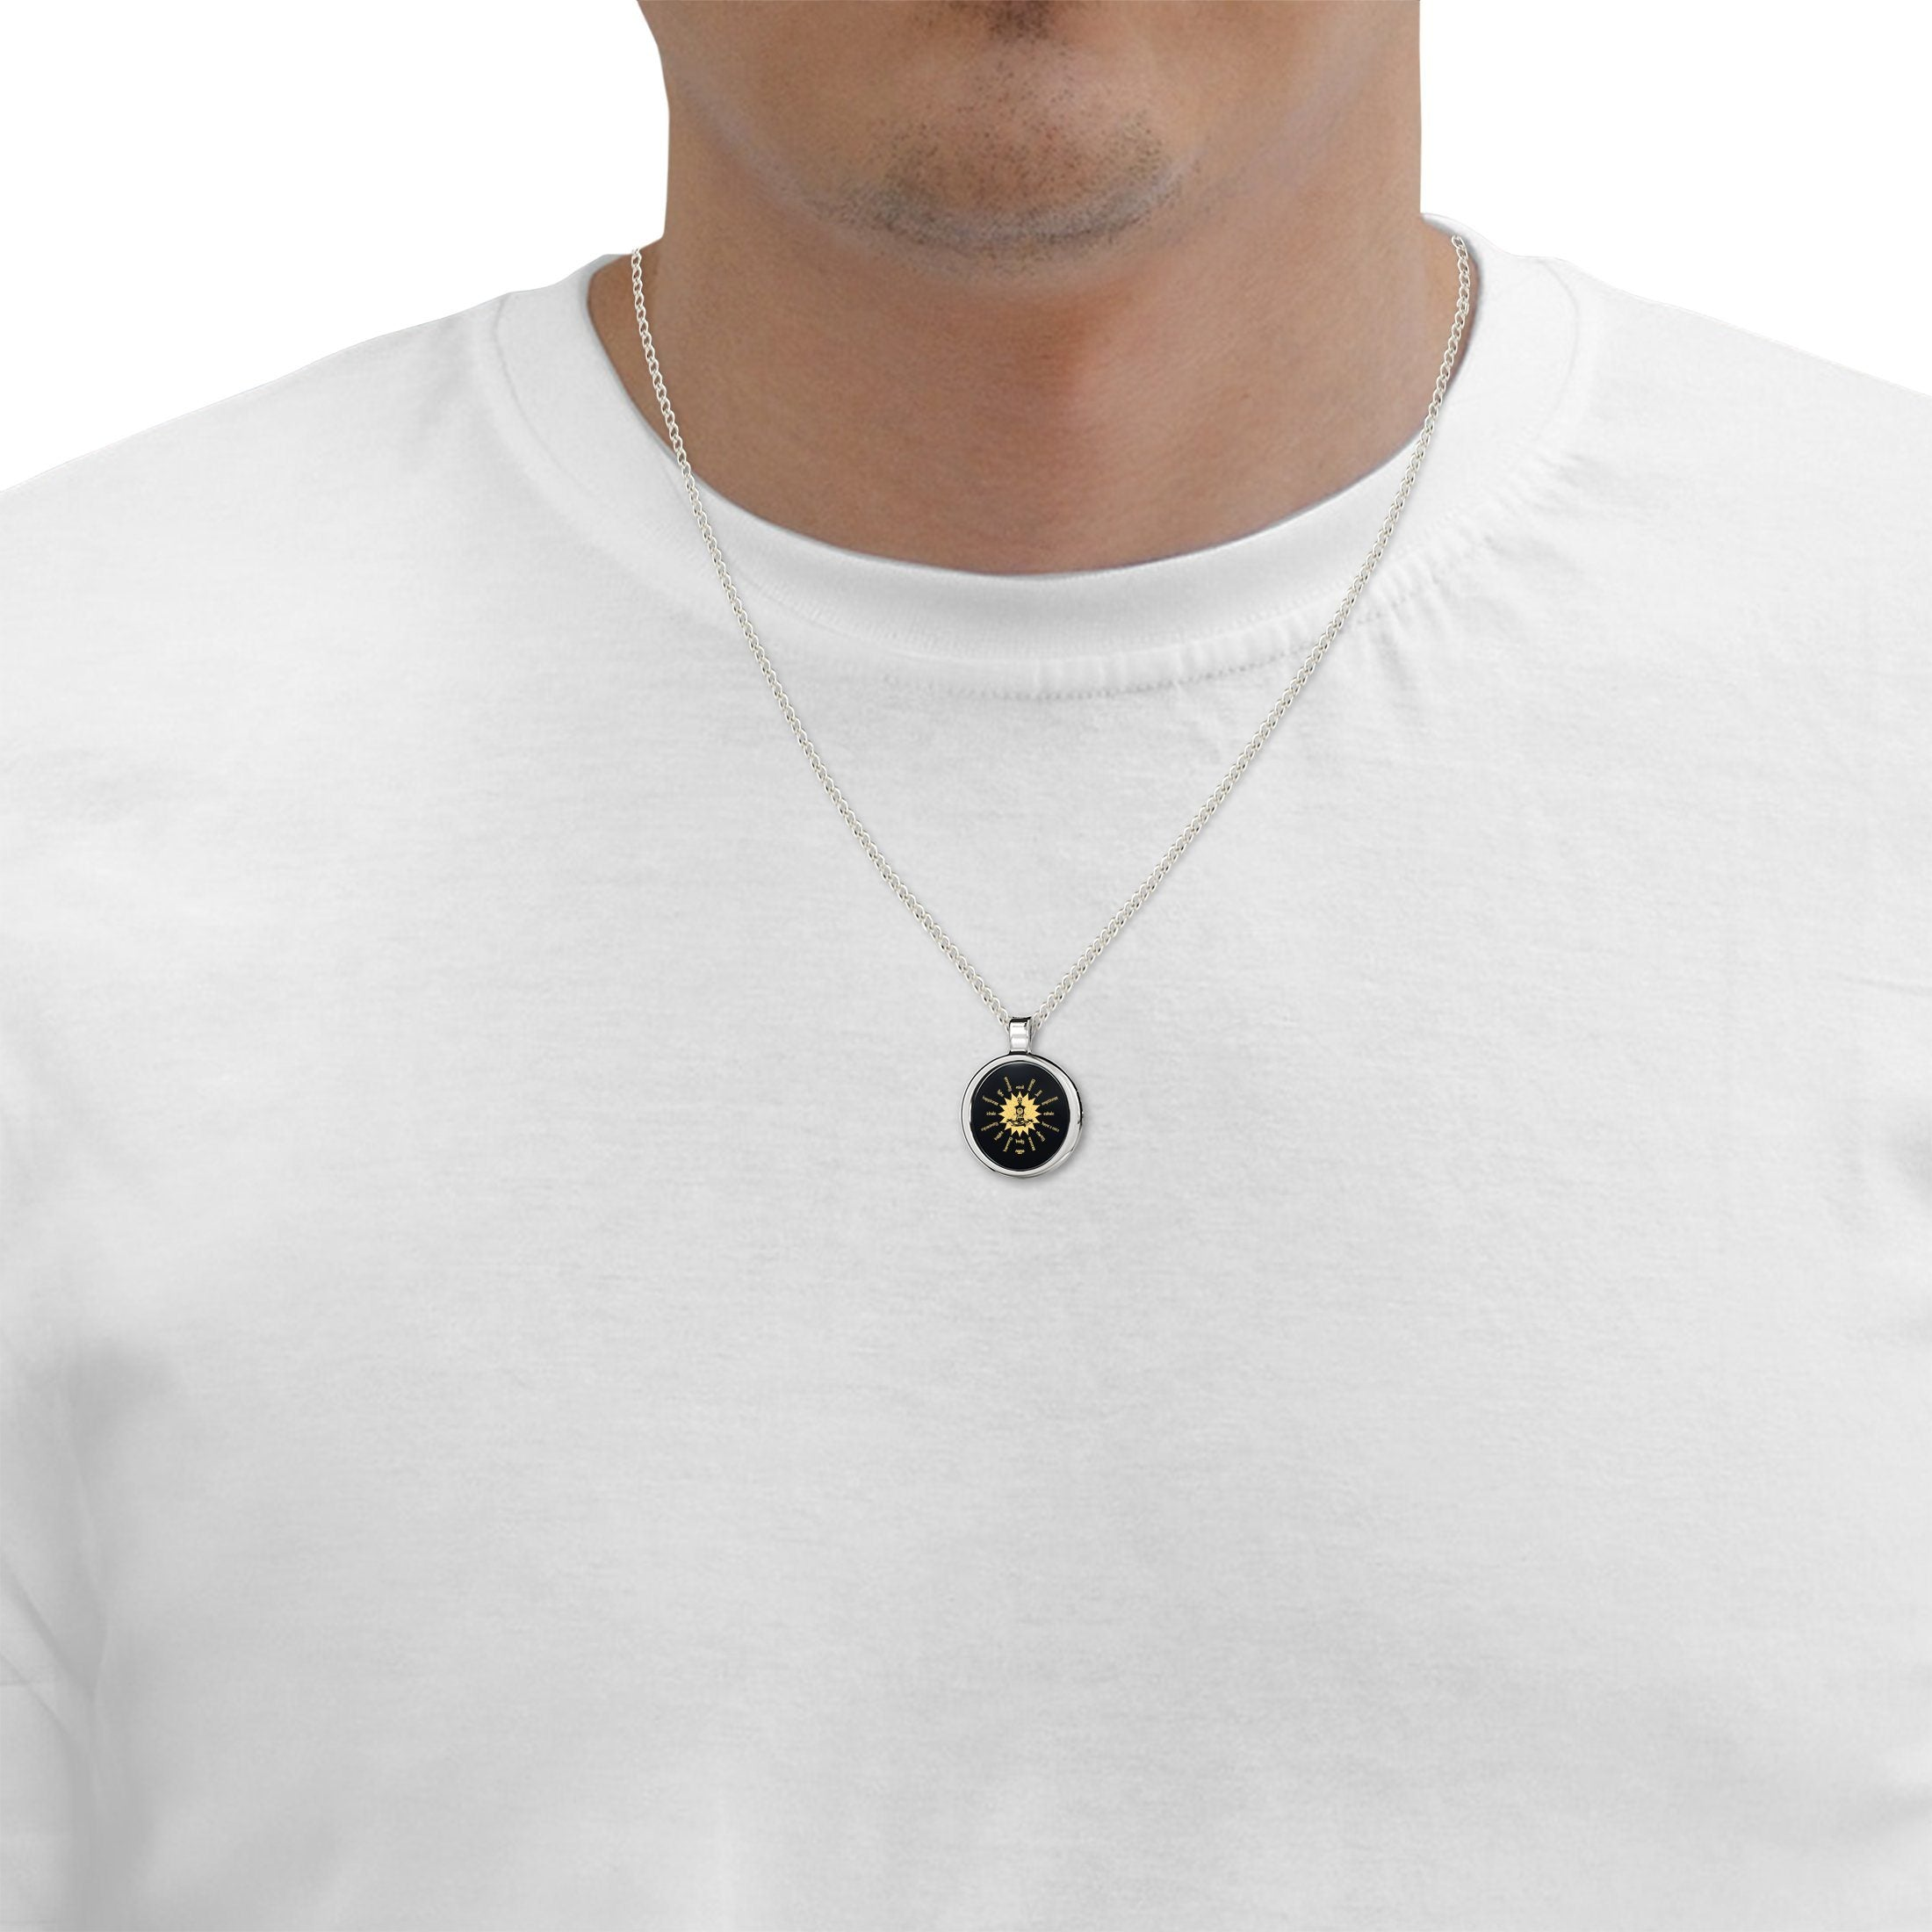 Meditation Gifts for Him, Nano Jewelry